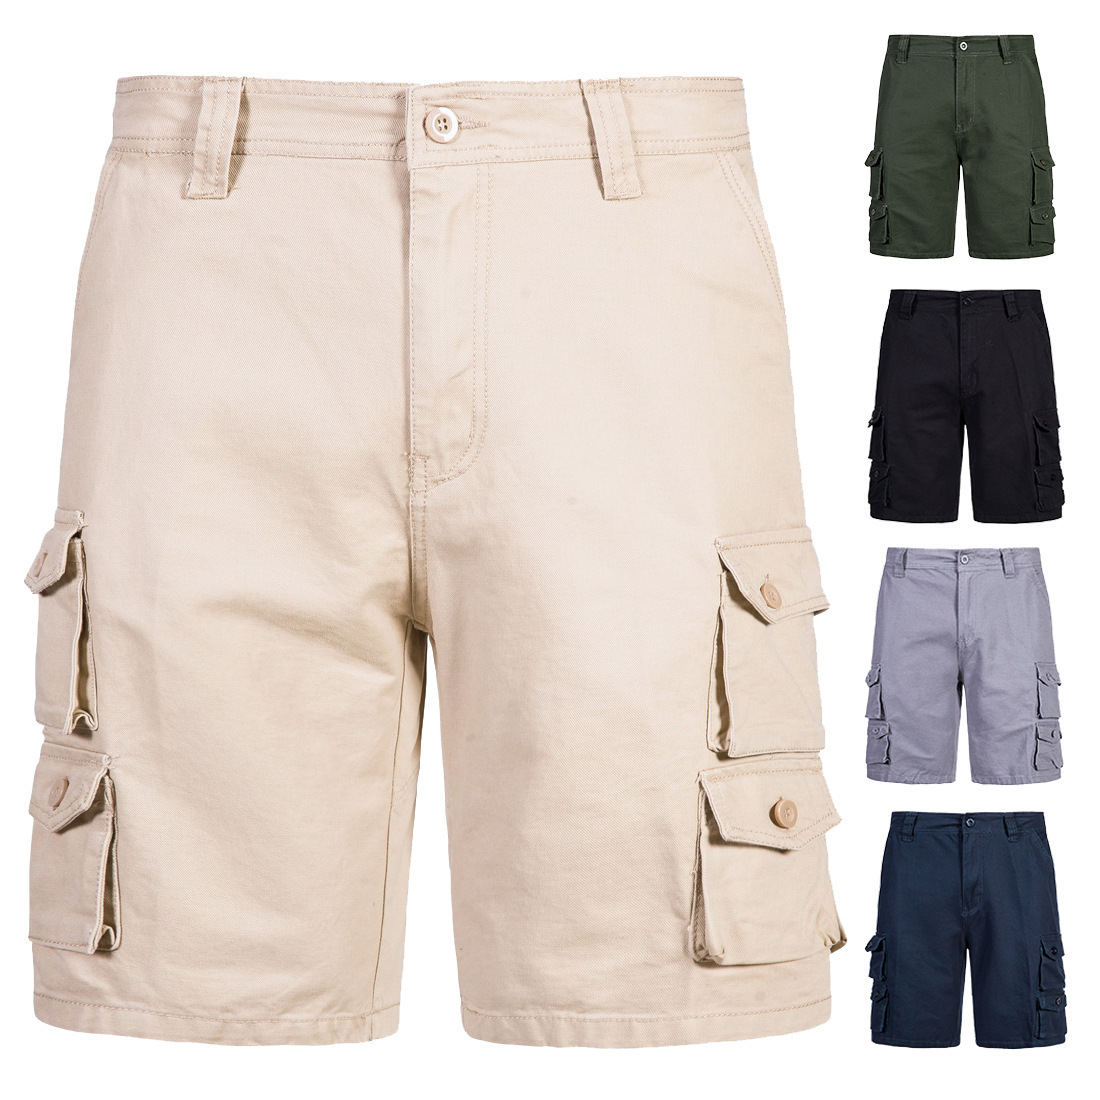 Foreign trade cross-border electricity wish amazon summer new outfits shorts men more pockets straight slacks